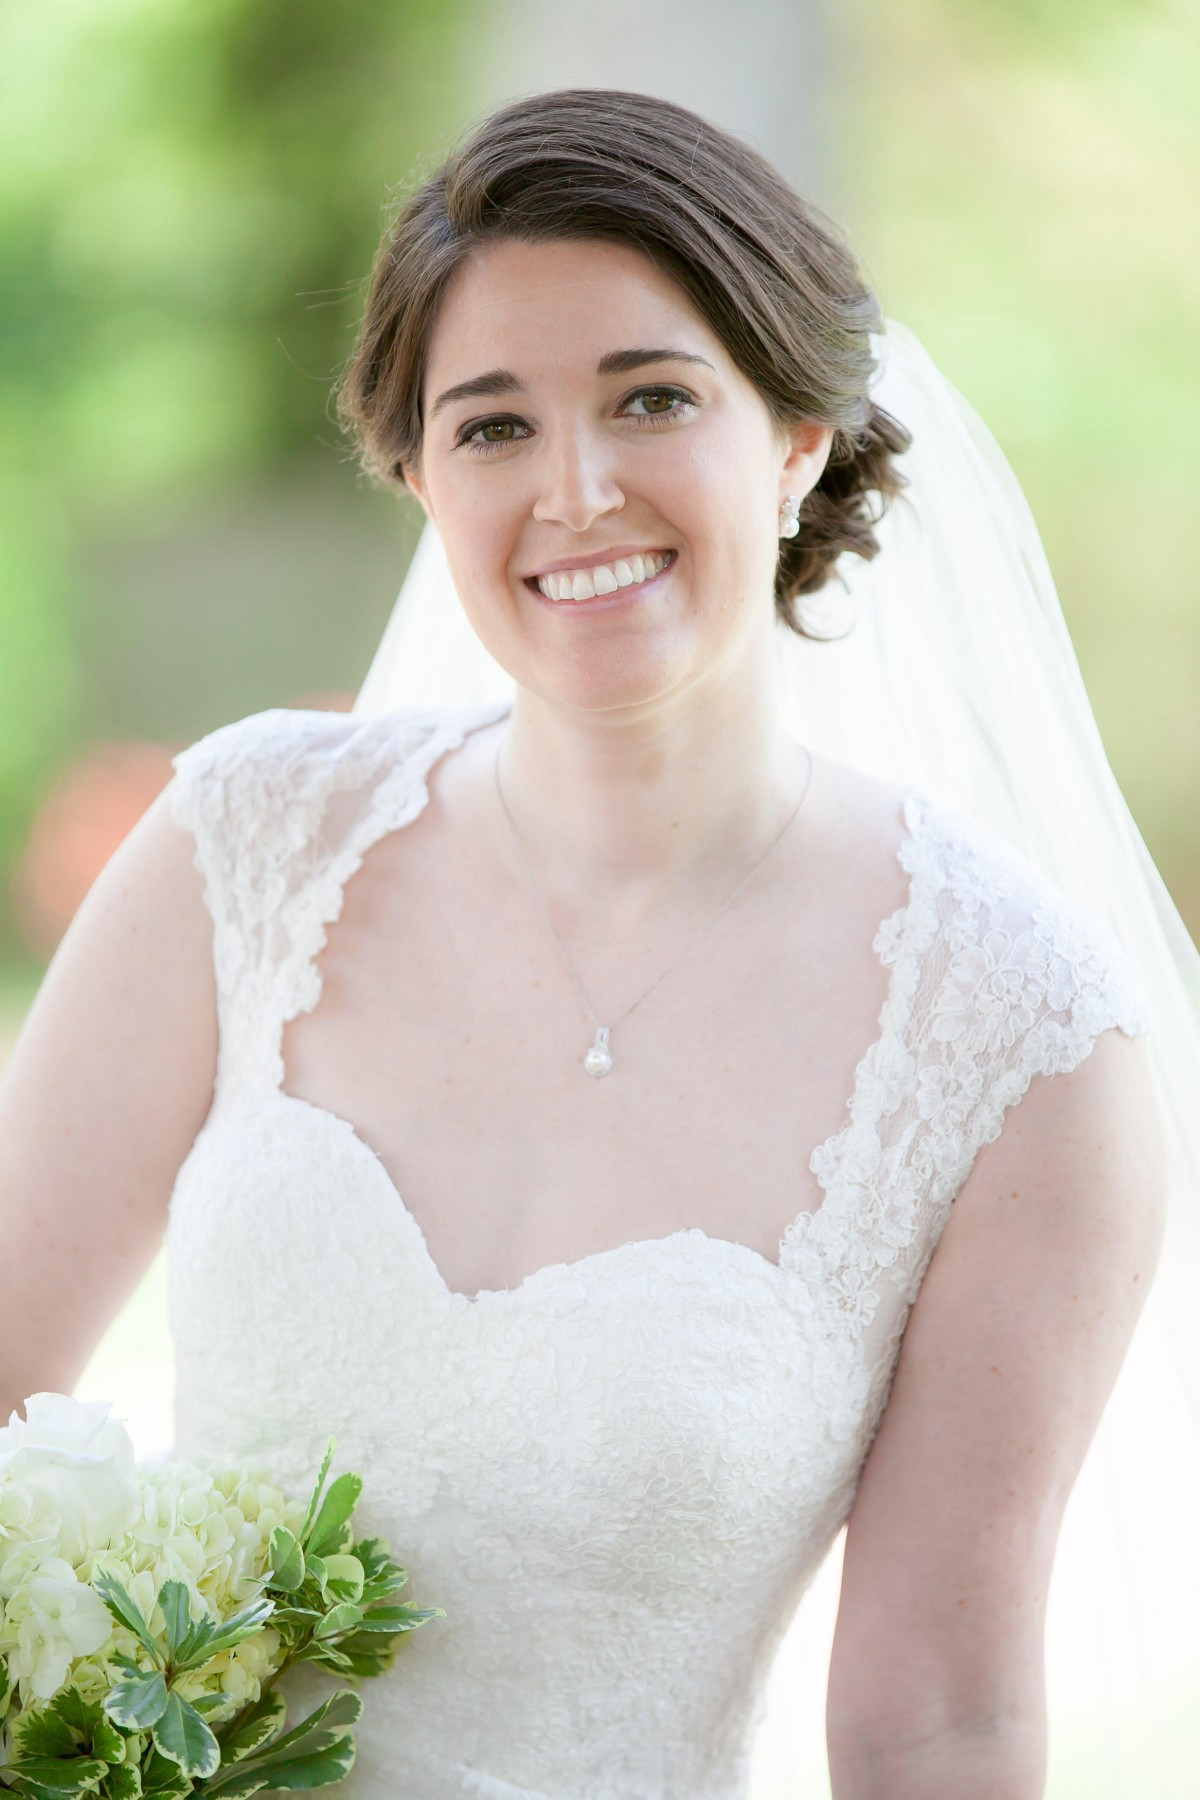 Bridal Portrait - Kate